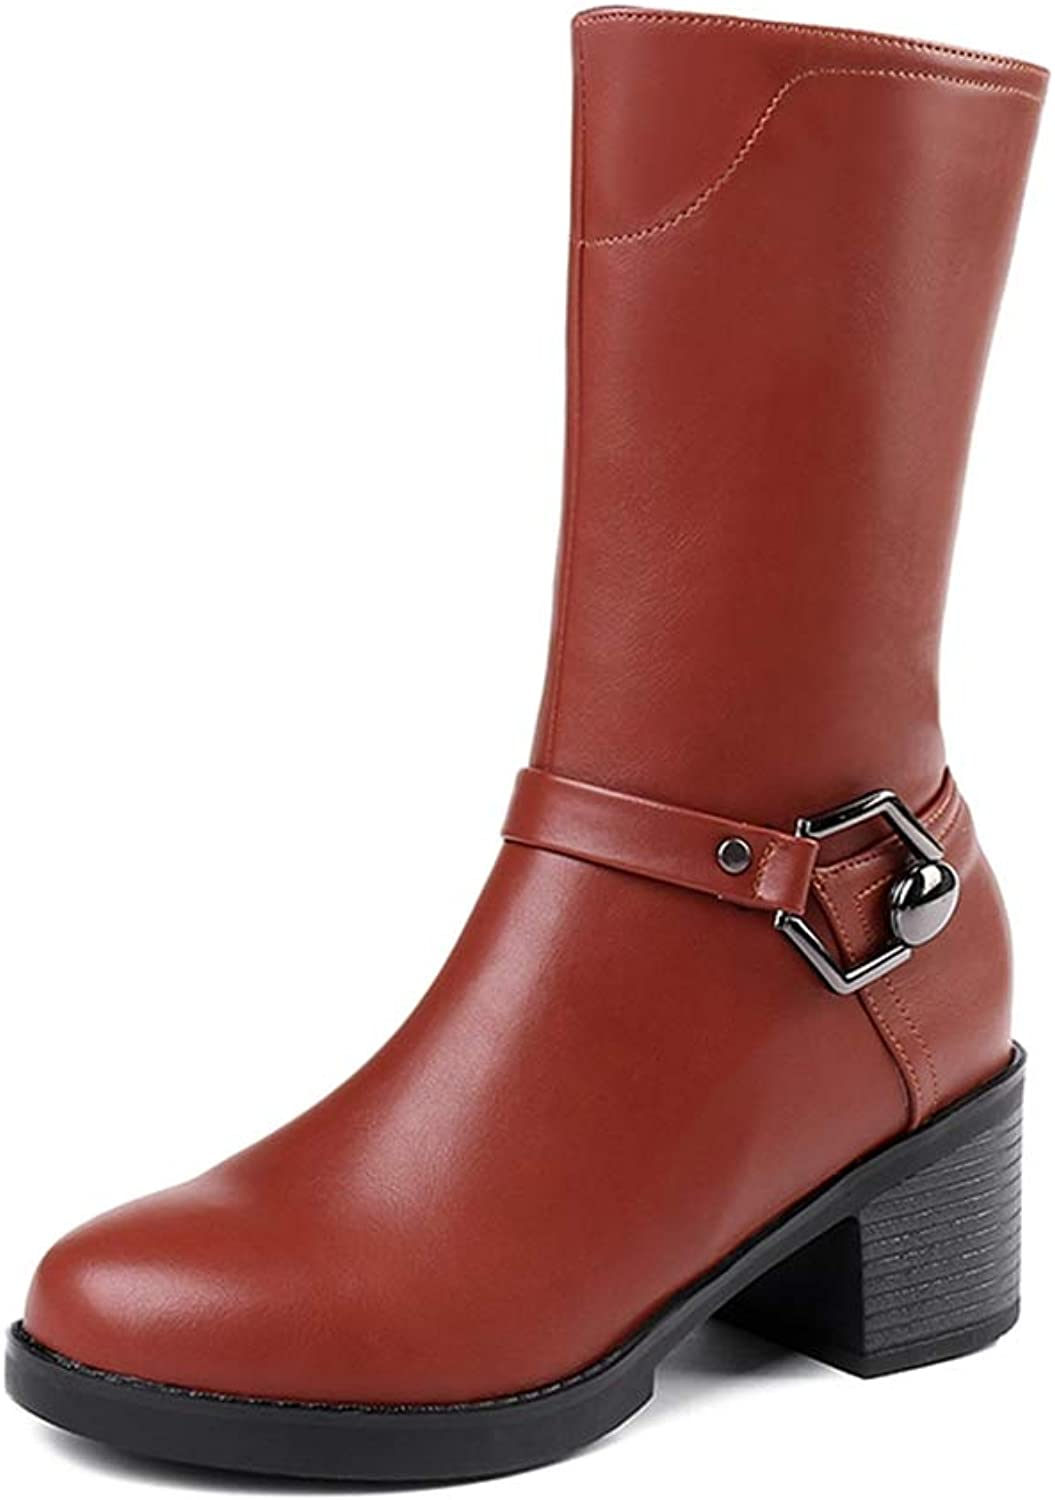 Hoxekle Woman Mid Calf Boots Metal Buckle Mid Chunky Heel Zipper Round Toe Female Sexy Casual Walking Short Boots.